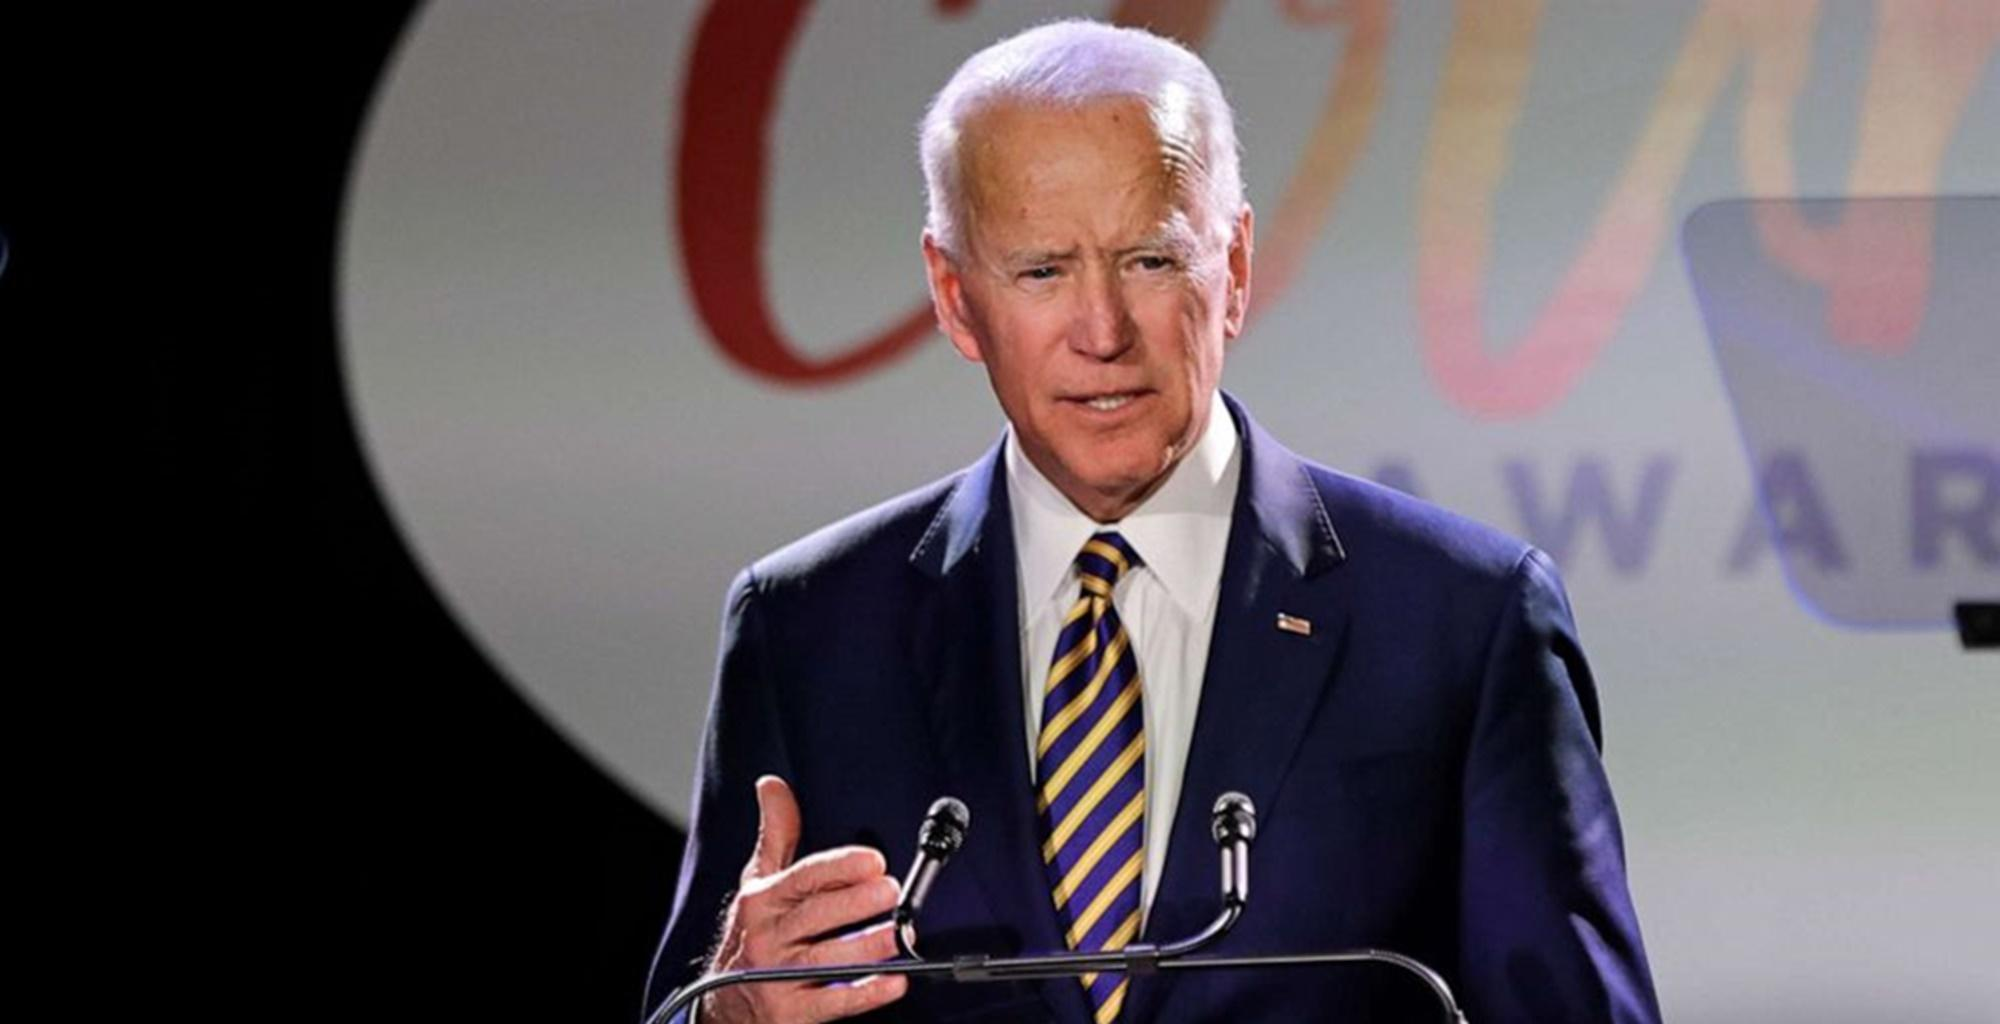 Joe Biden Is Still Apologizing And Talking About Anita Hill -- Should He Not Focus More On The Future Of This Country?